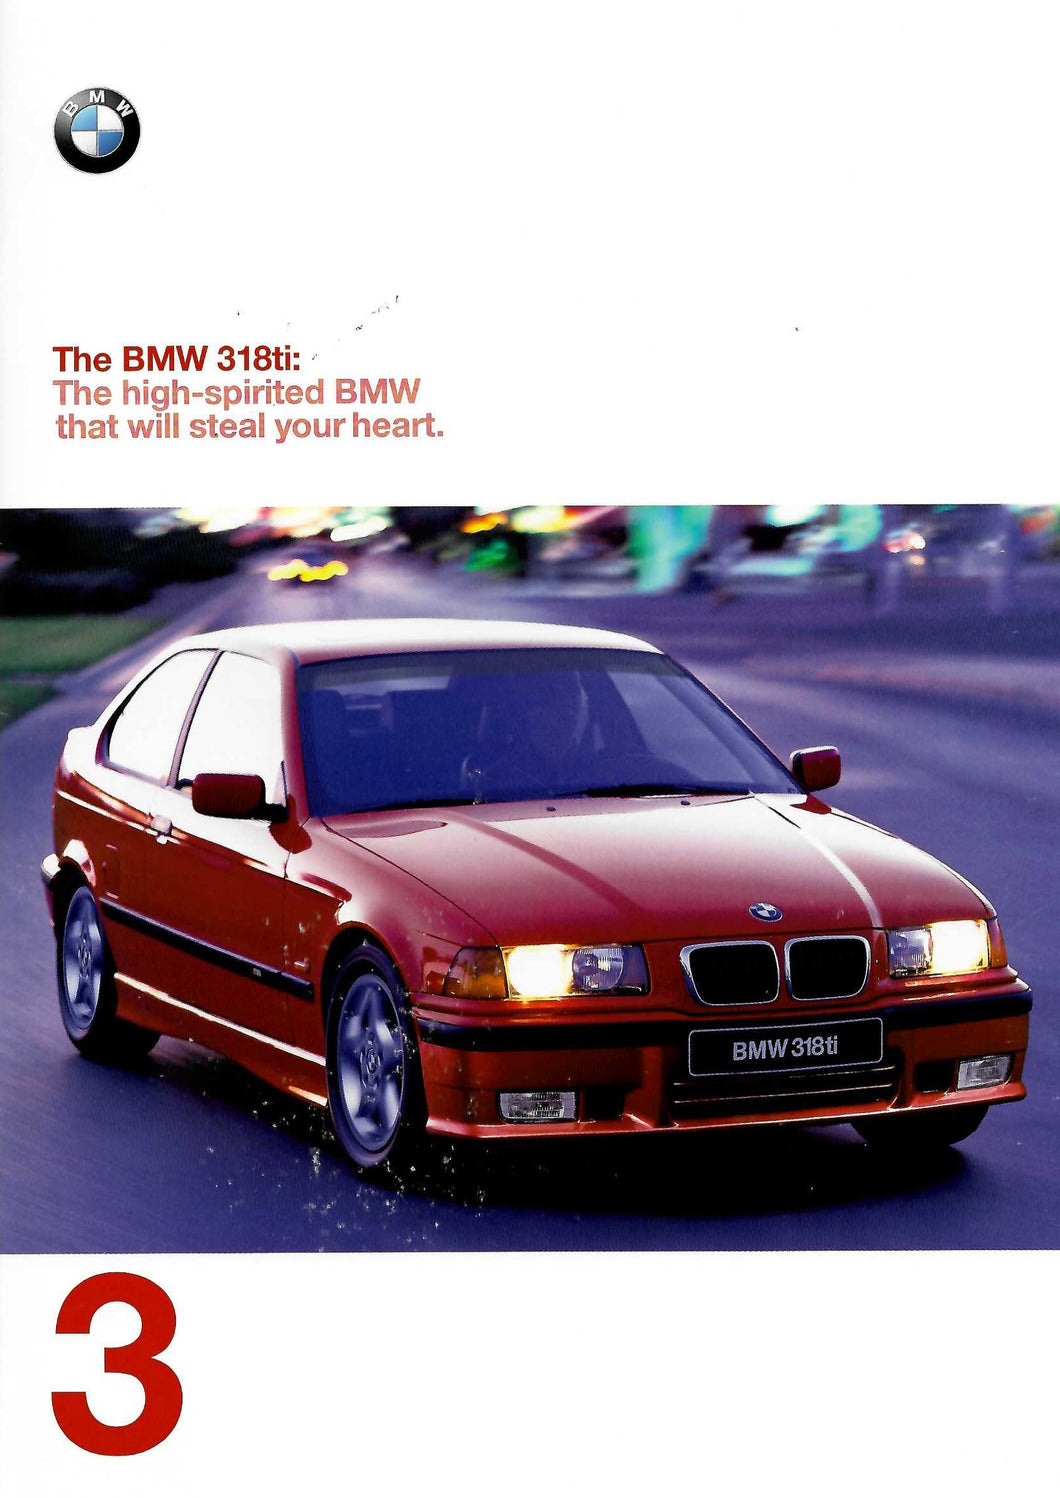 Brochure - The BMW 318ti: The high-spirited BMW that will steal your heart.